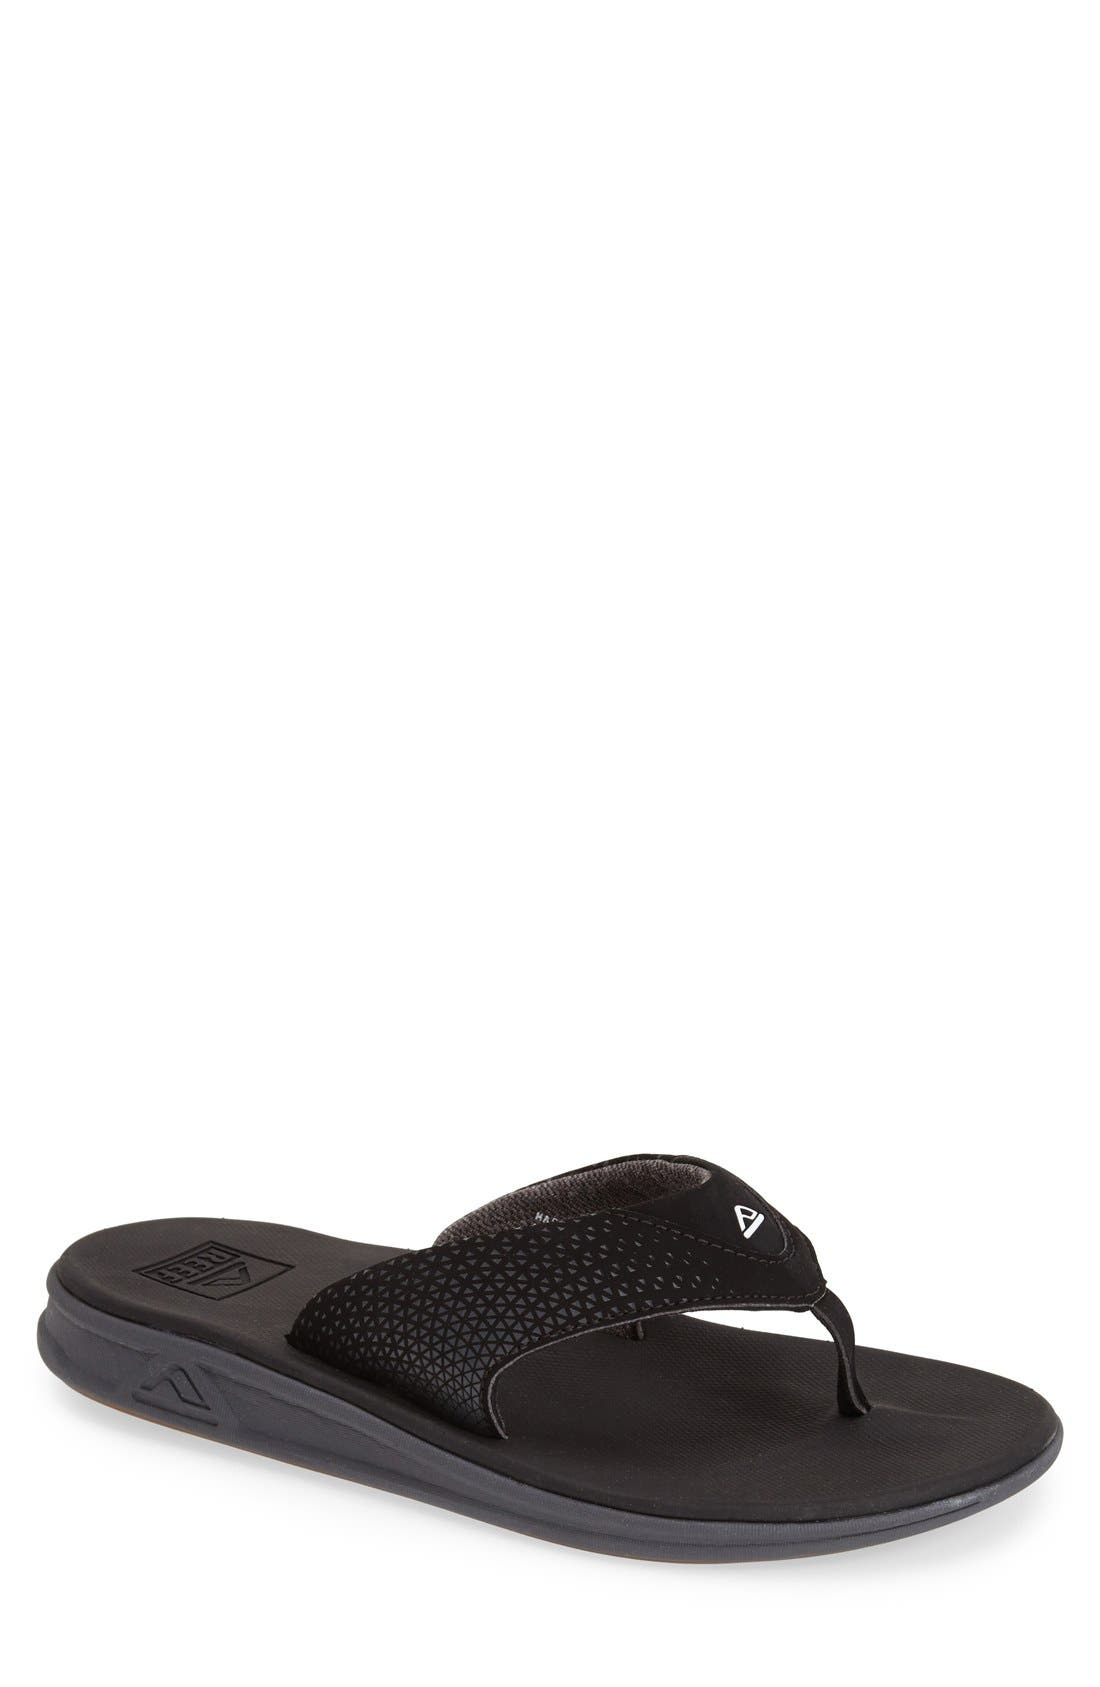 'Rover' Flip Flop,                             Main thumbnail 1, color,                             Black